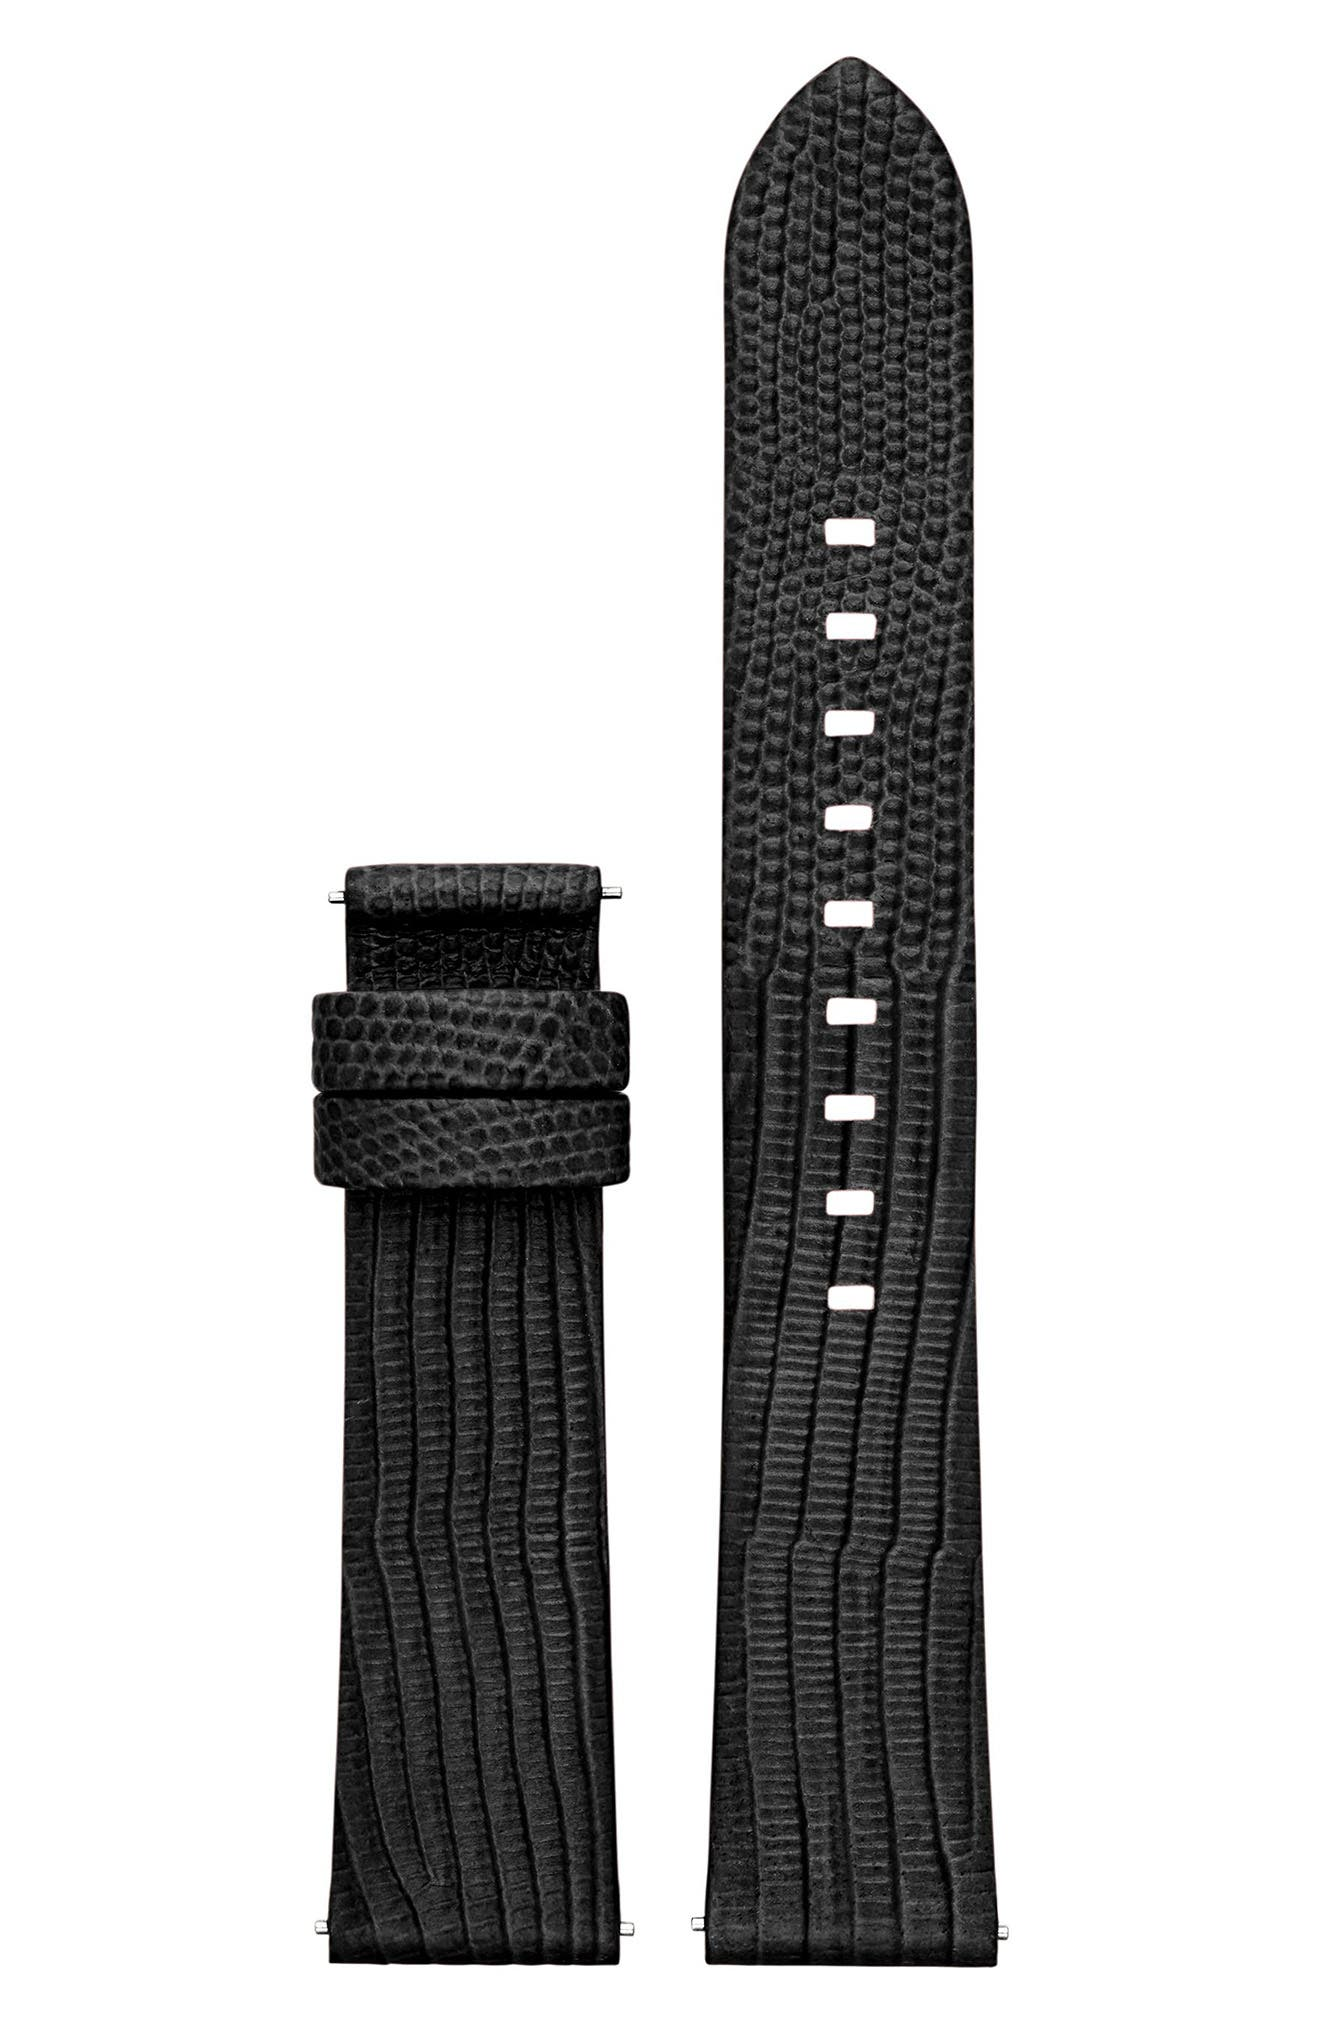 MICHAEL KORS ACCESS Sofie 18mm Leather Watch Strap, Main, color, 001